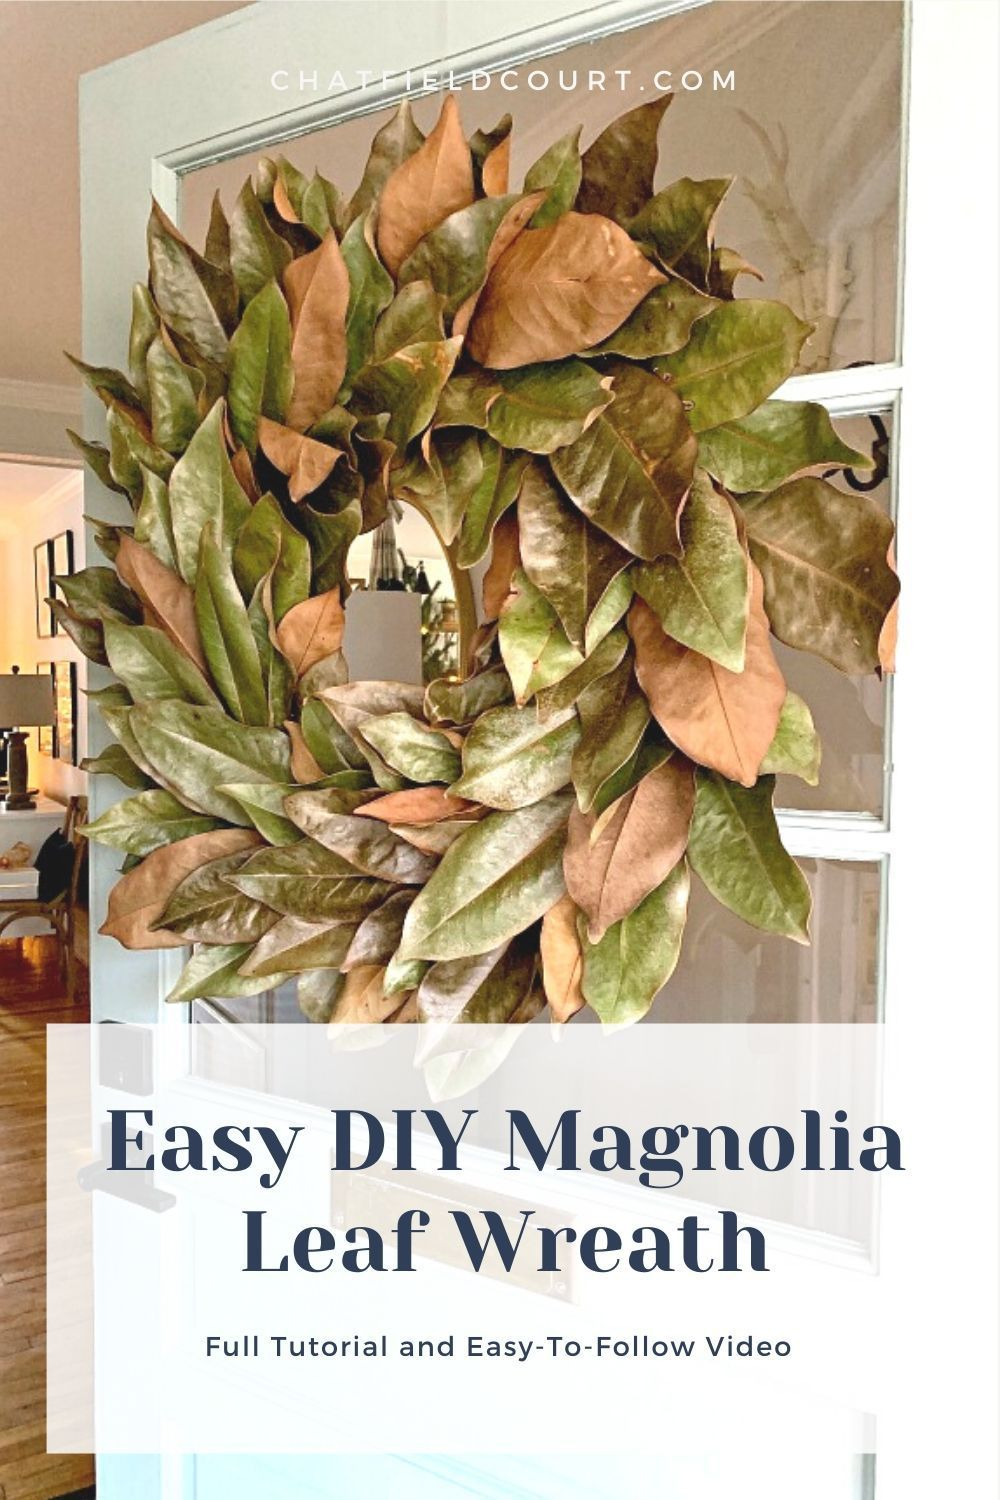 DIY Magnolia Leaf Wreath - How to make a DIY magnolia leaf wreath for your front door or as wedding decor. An easy and inexpensive craft with full tutorial and a video.